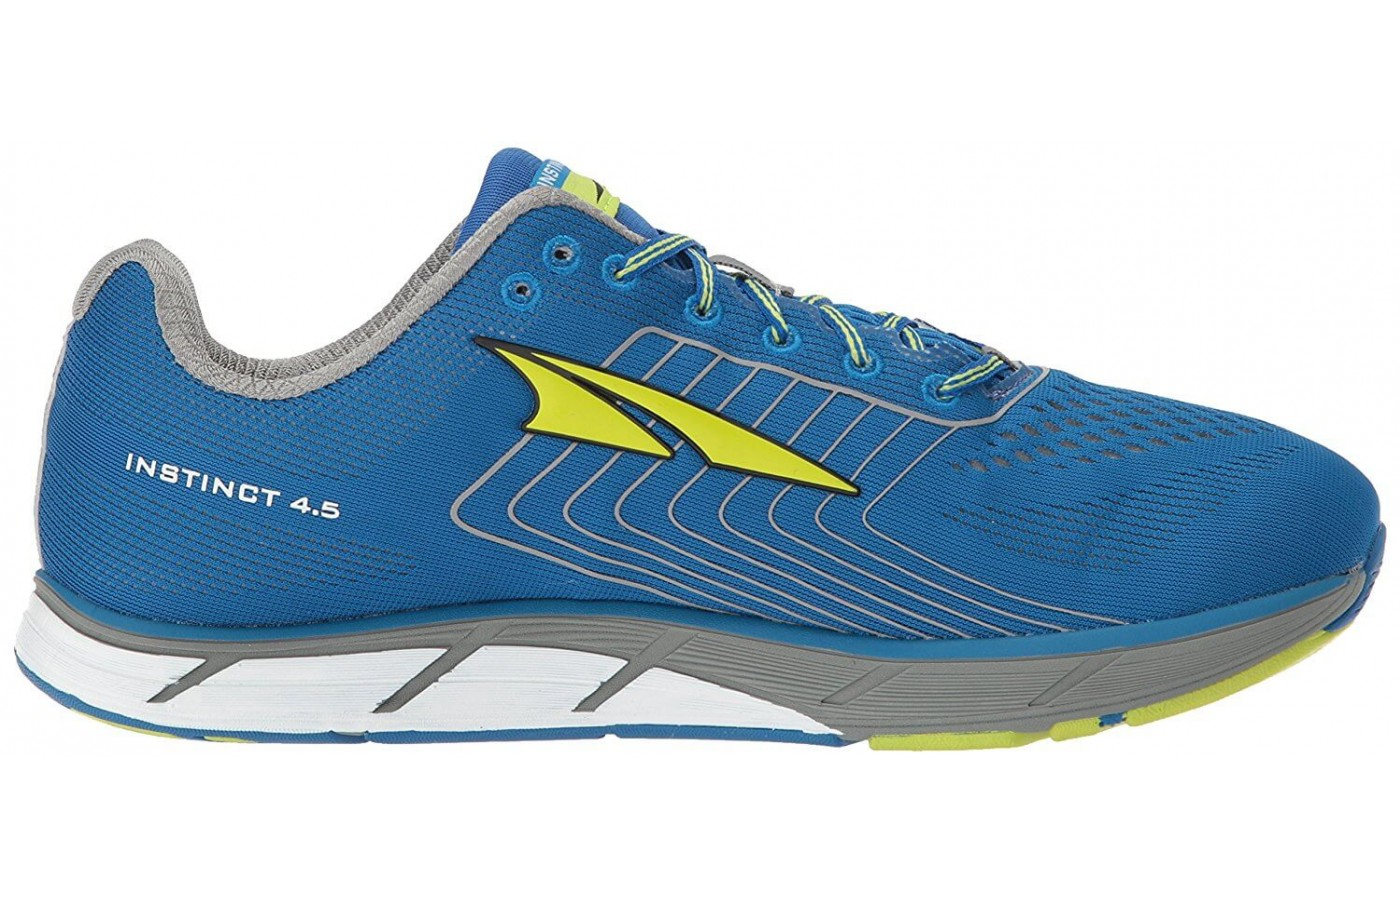 Side view of Altra Instinct 4.5